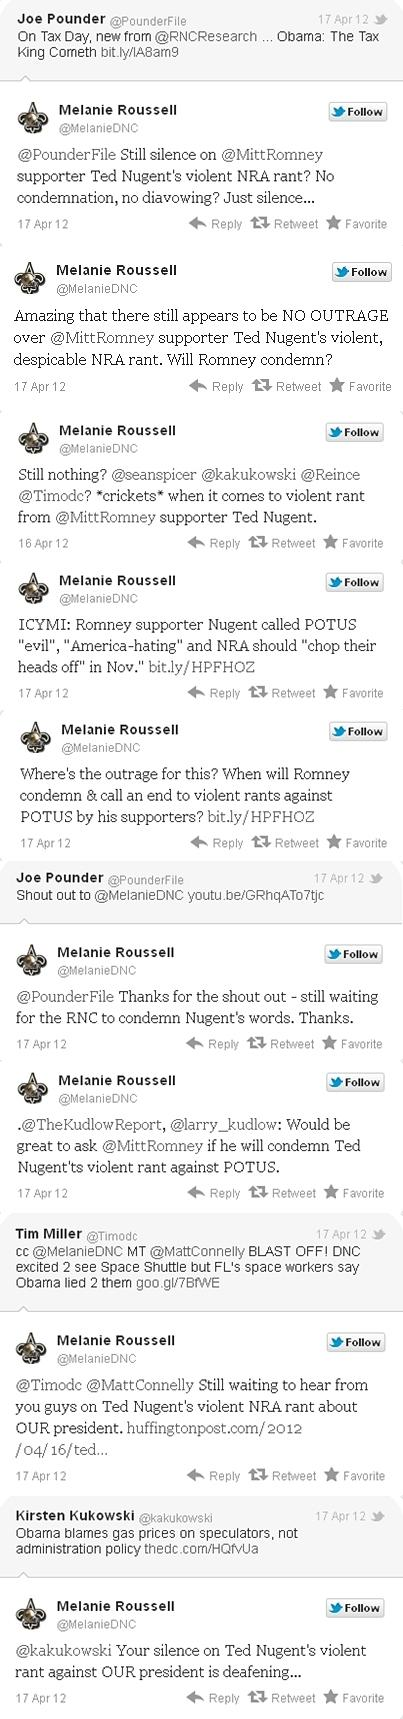 DNC Press Secretary Melanie Roussell Blasts Ted Nugent on Twitter